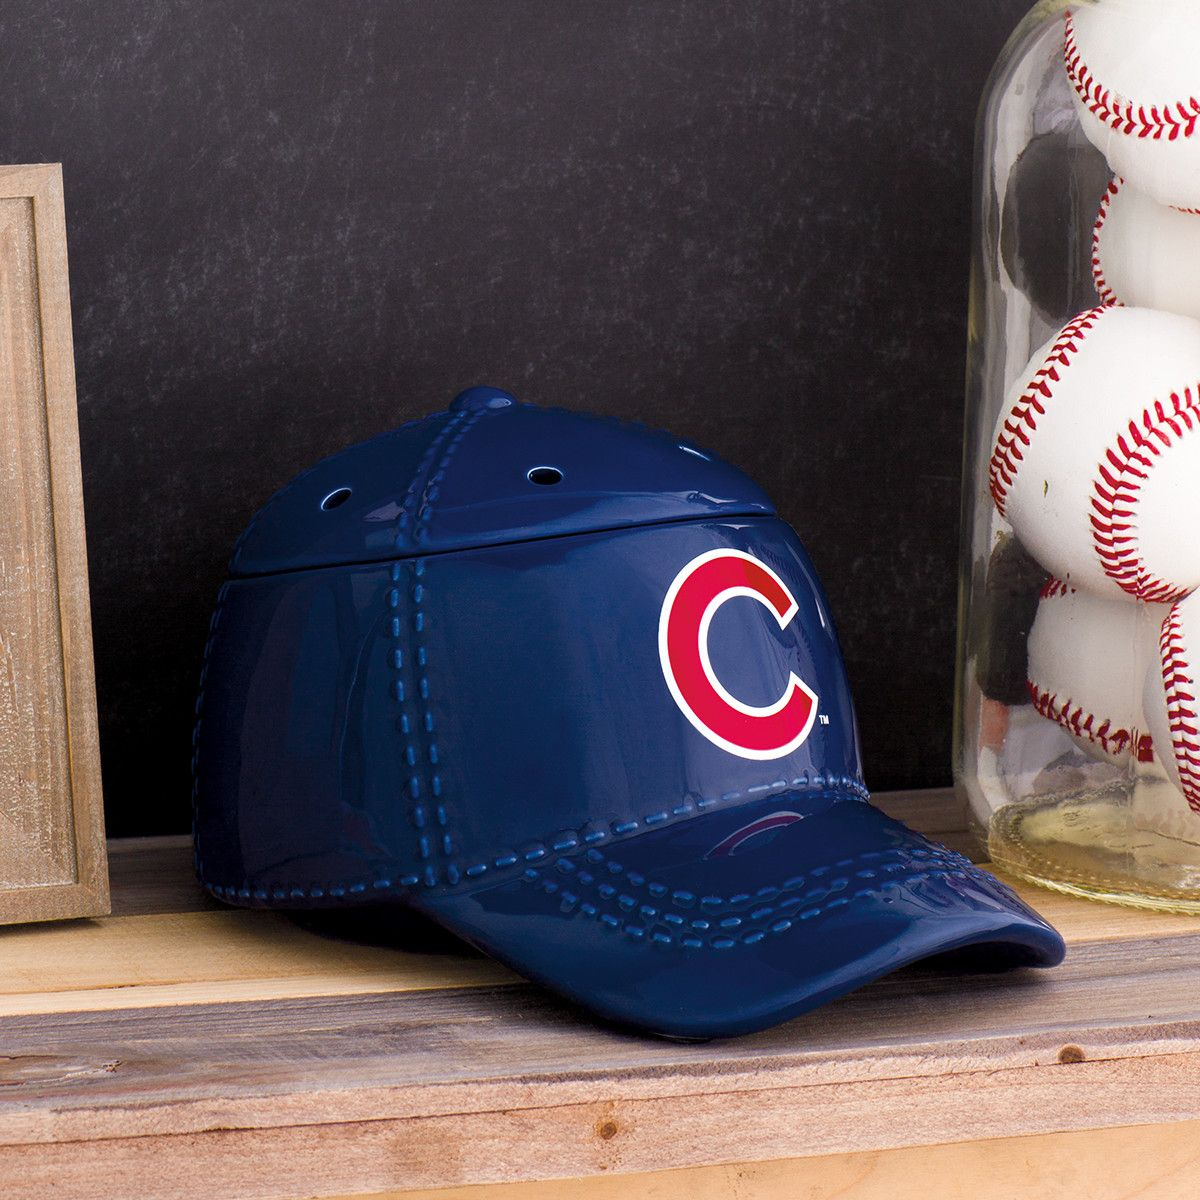 d7edcd79131 Cubs fan  Get this warmer here https   Joleensecor.Scentsy.us